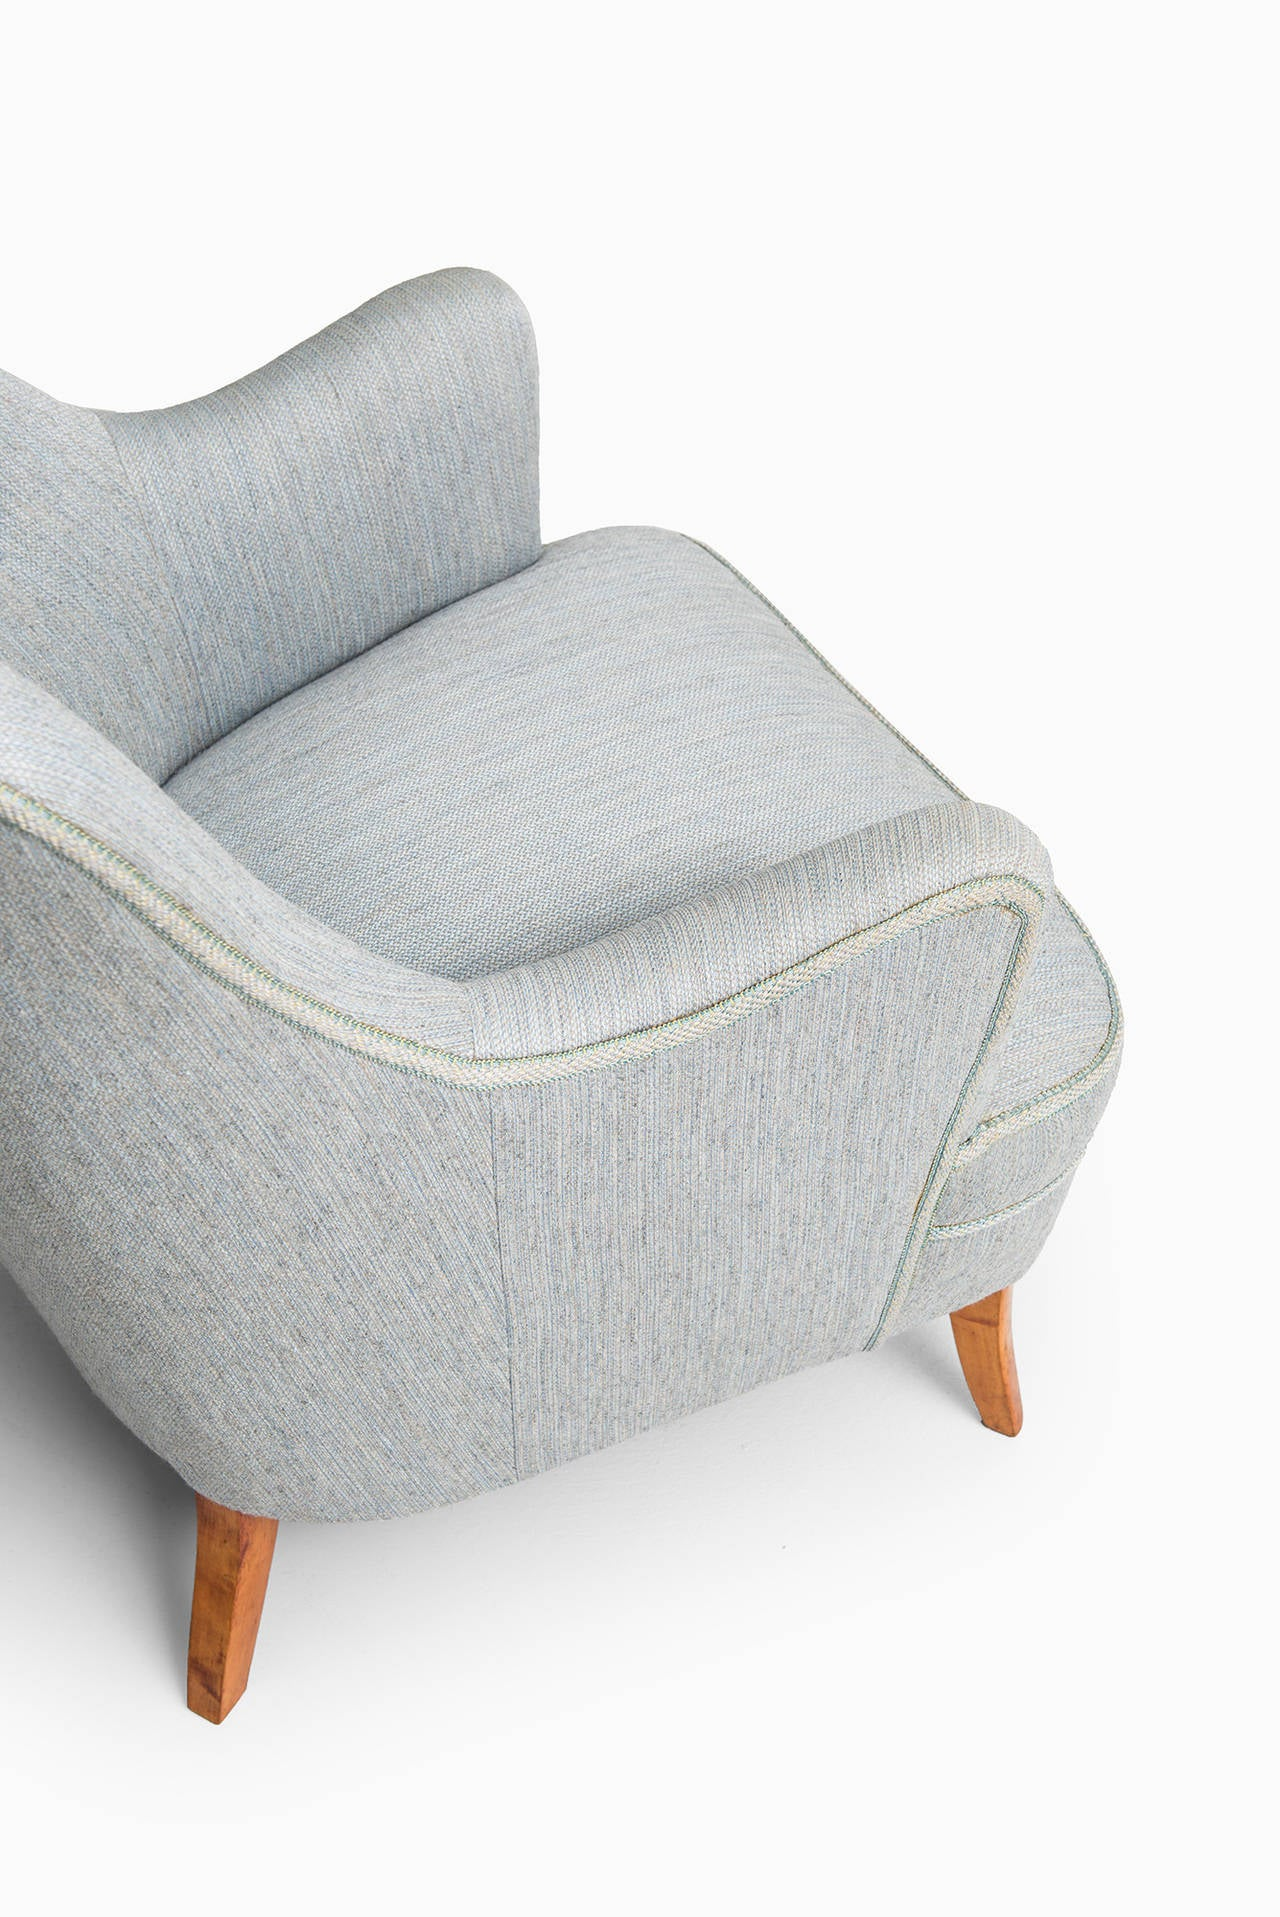 Carl Malmsten Easy Chair by O.H Sjögren in Sweden In Excellent Condition For Sale In Malmo, SE